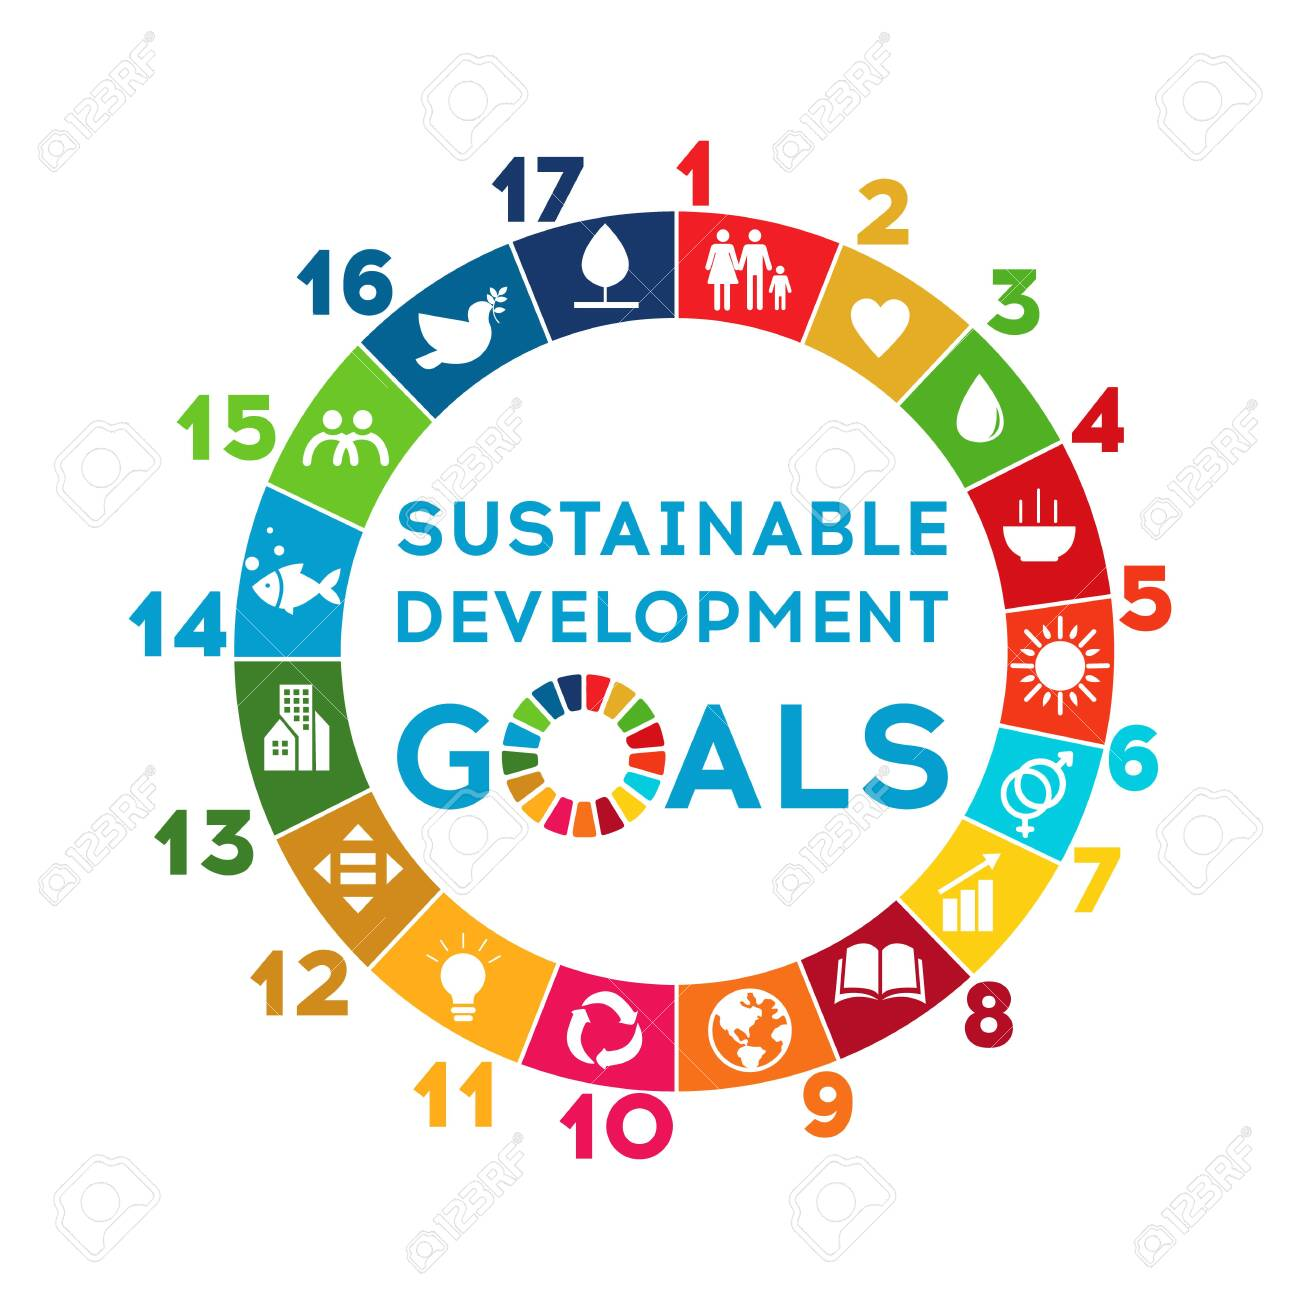 Sustainable Development Global Goals. Corporate social responsibility. - 135389149